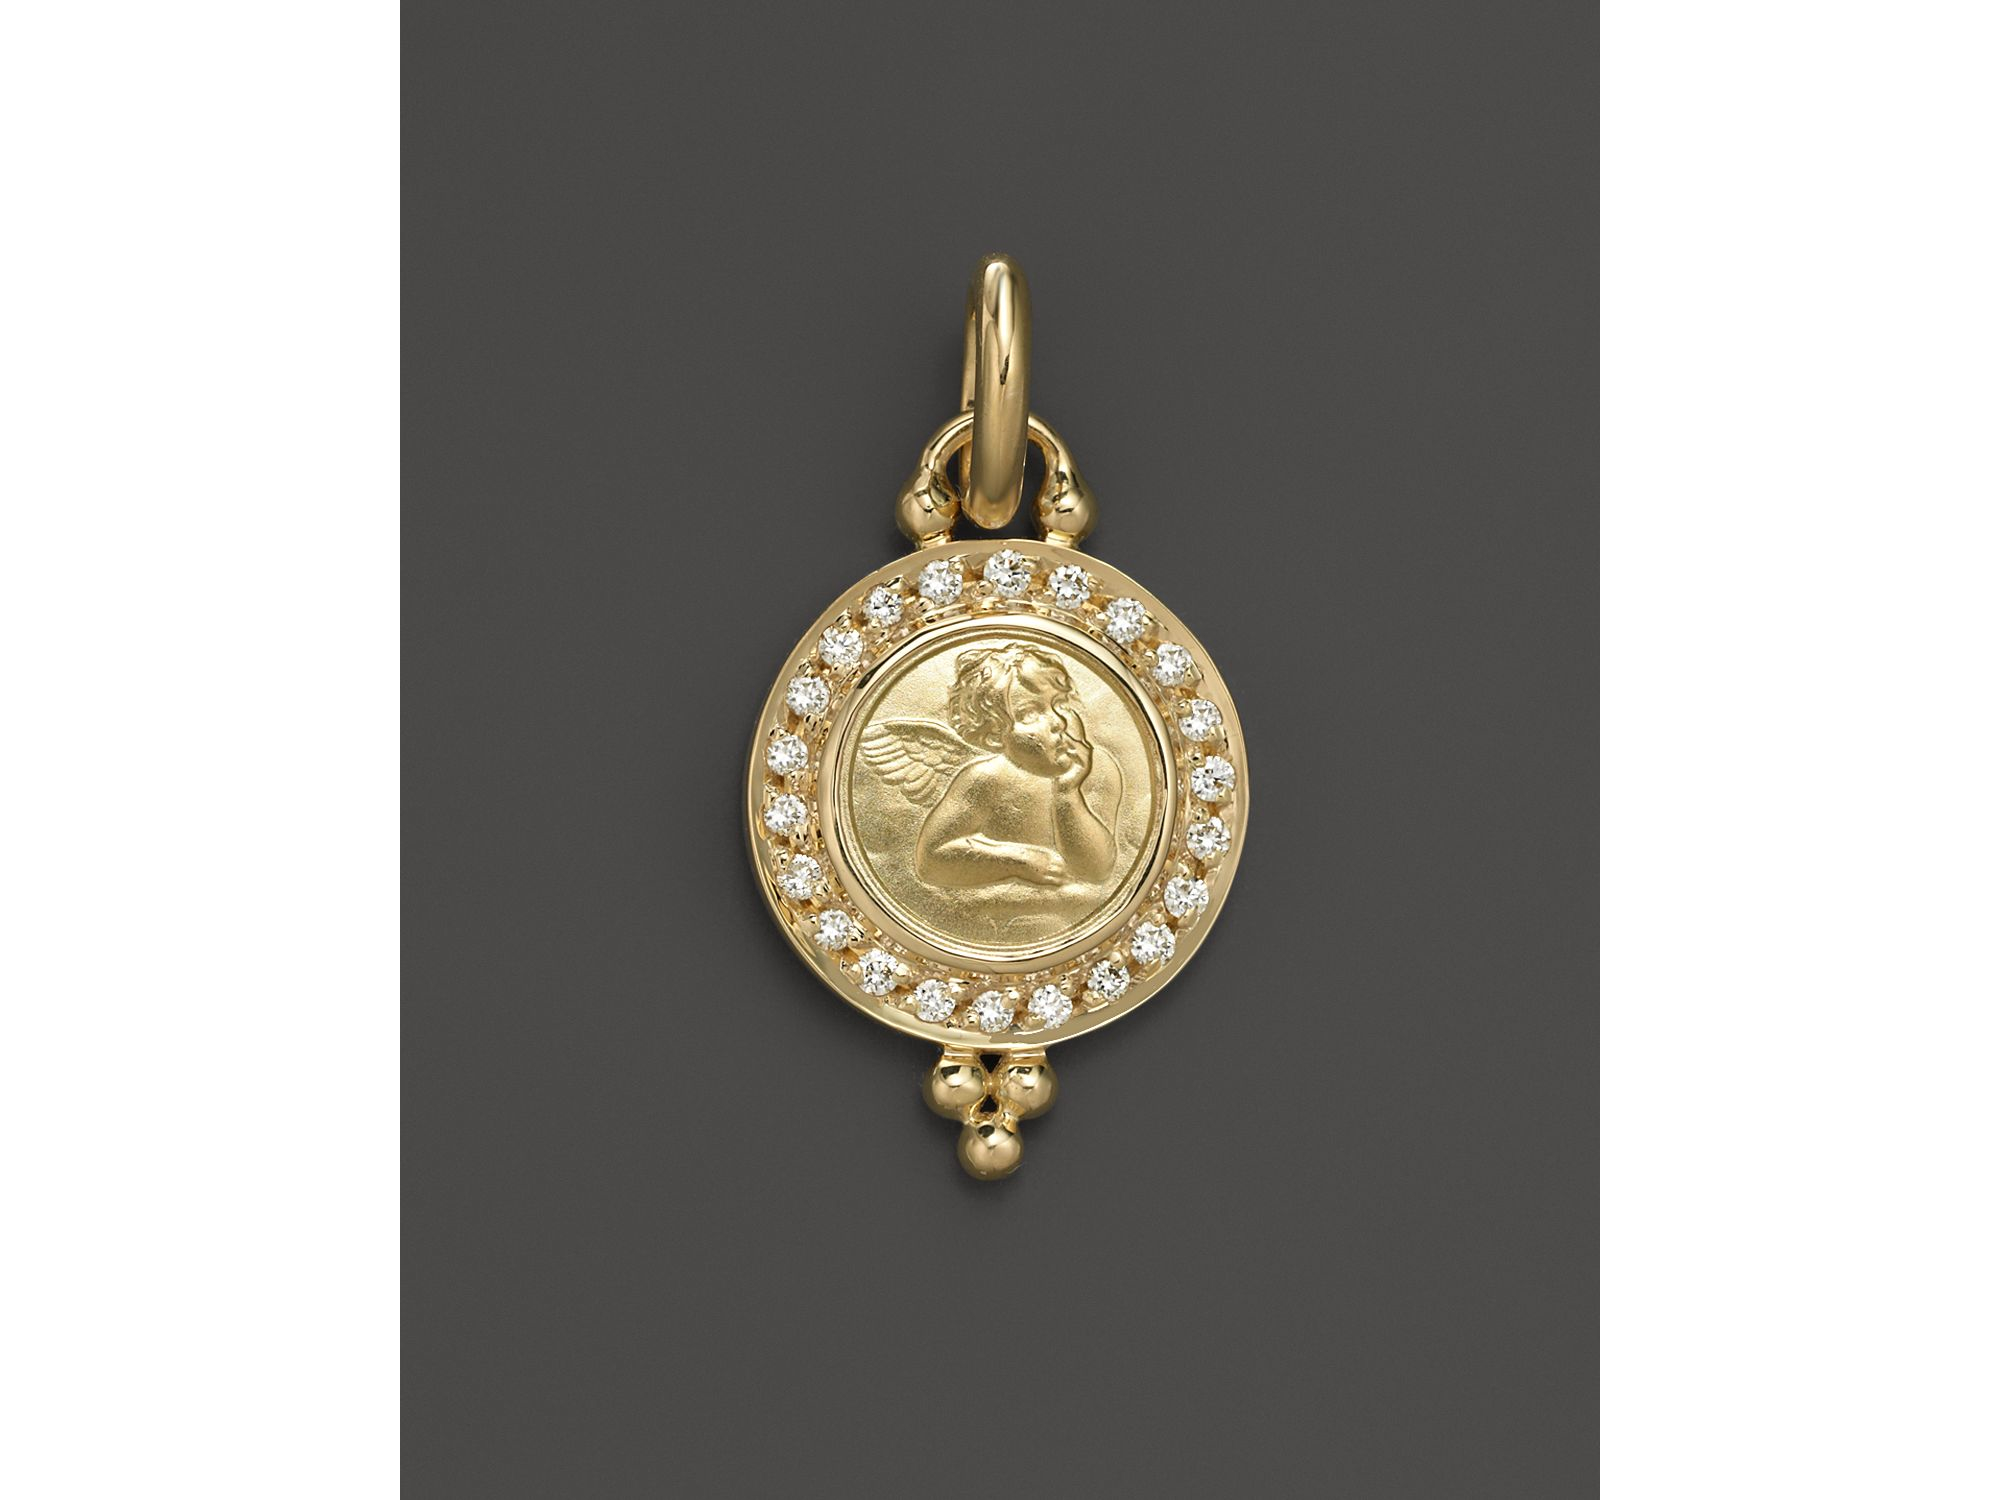 temple st clair 18k yellow gold pav 233 pendant with